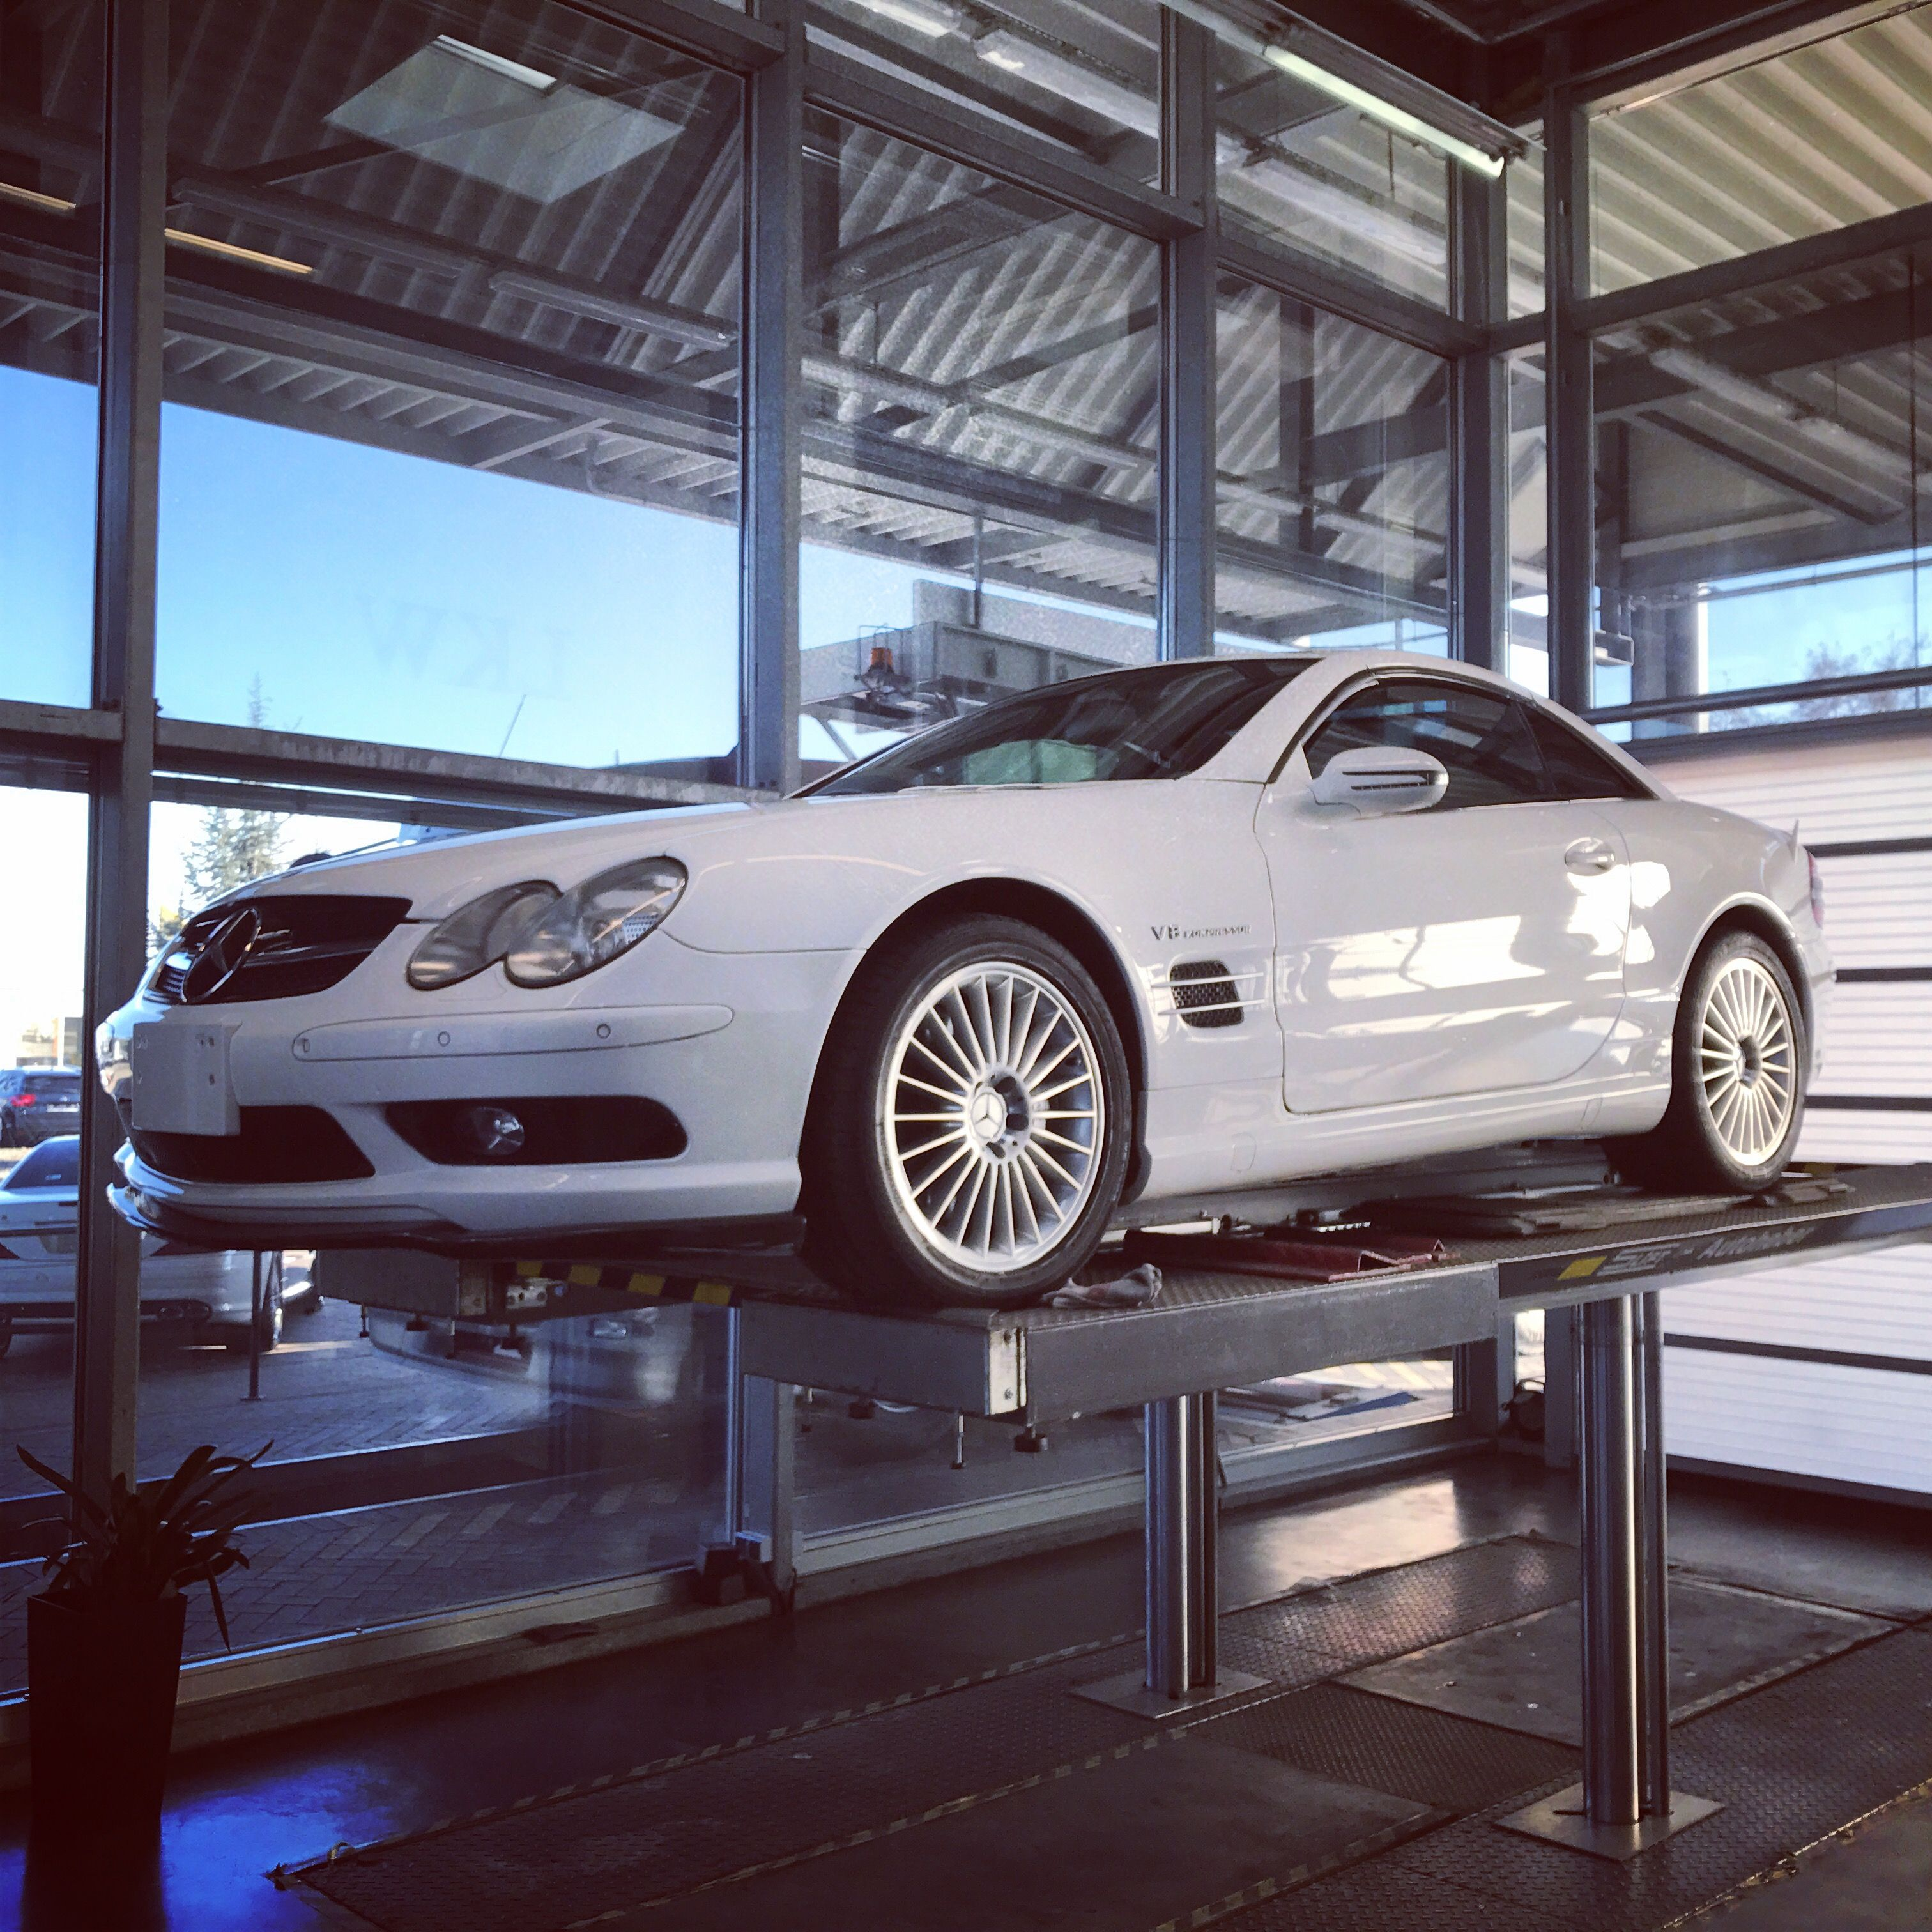 4b1739ea5fe9cc5284fb094078c8506d Interesting Info About 2001 E55 Amg with Terrific Images Cars Review